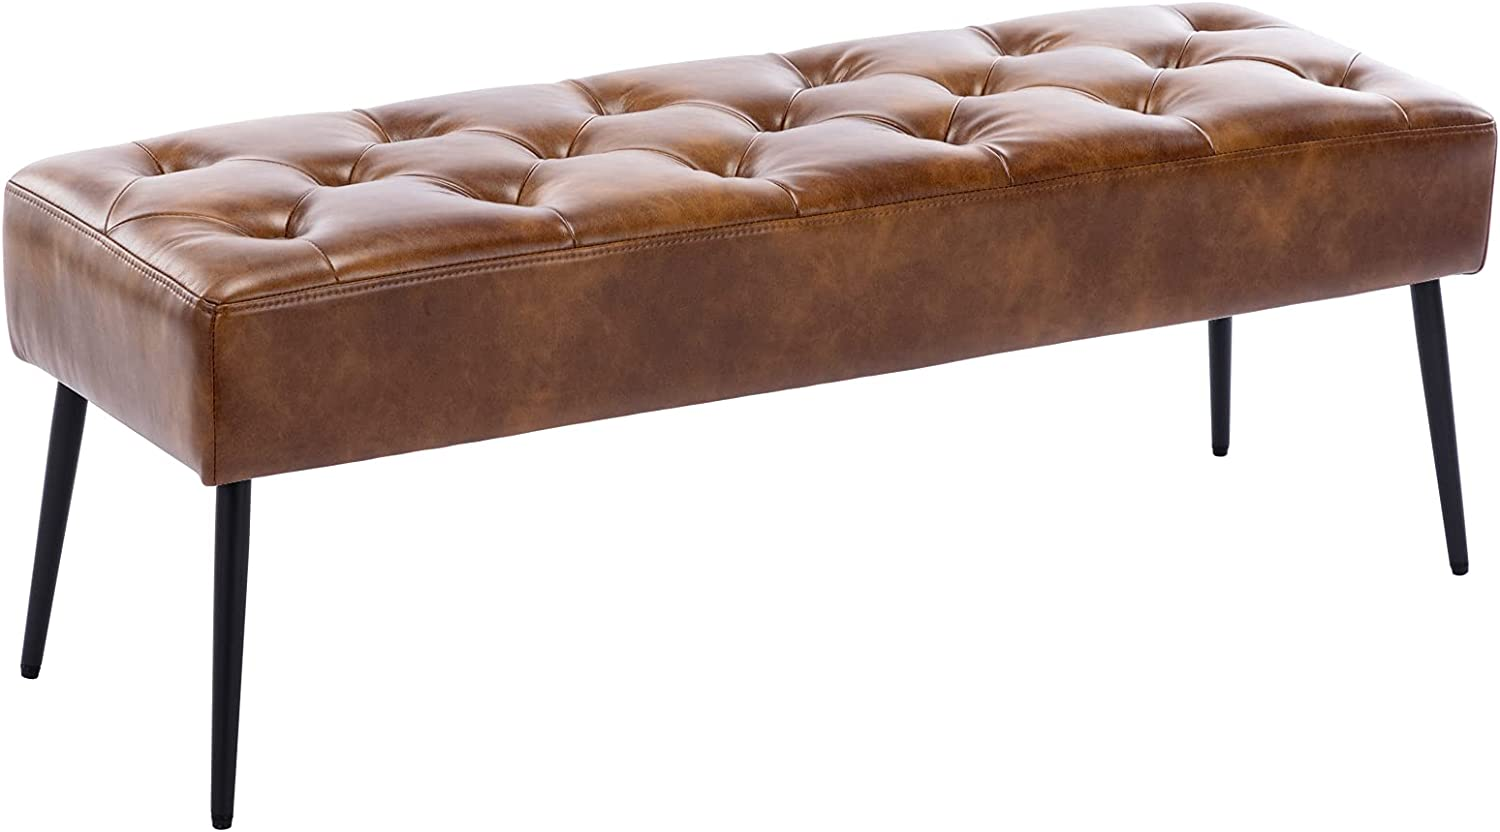 Duhome Button-Tufted Elegant Ottoman Bench Bedroom Sale special price Upholstered Benches